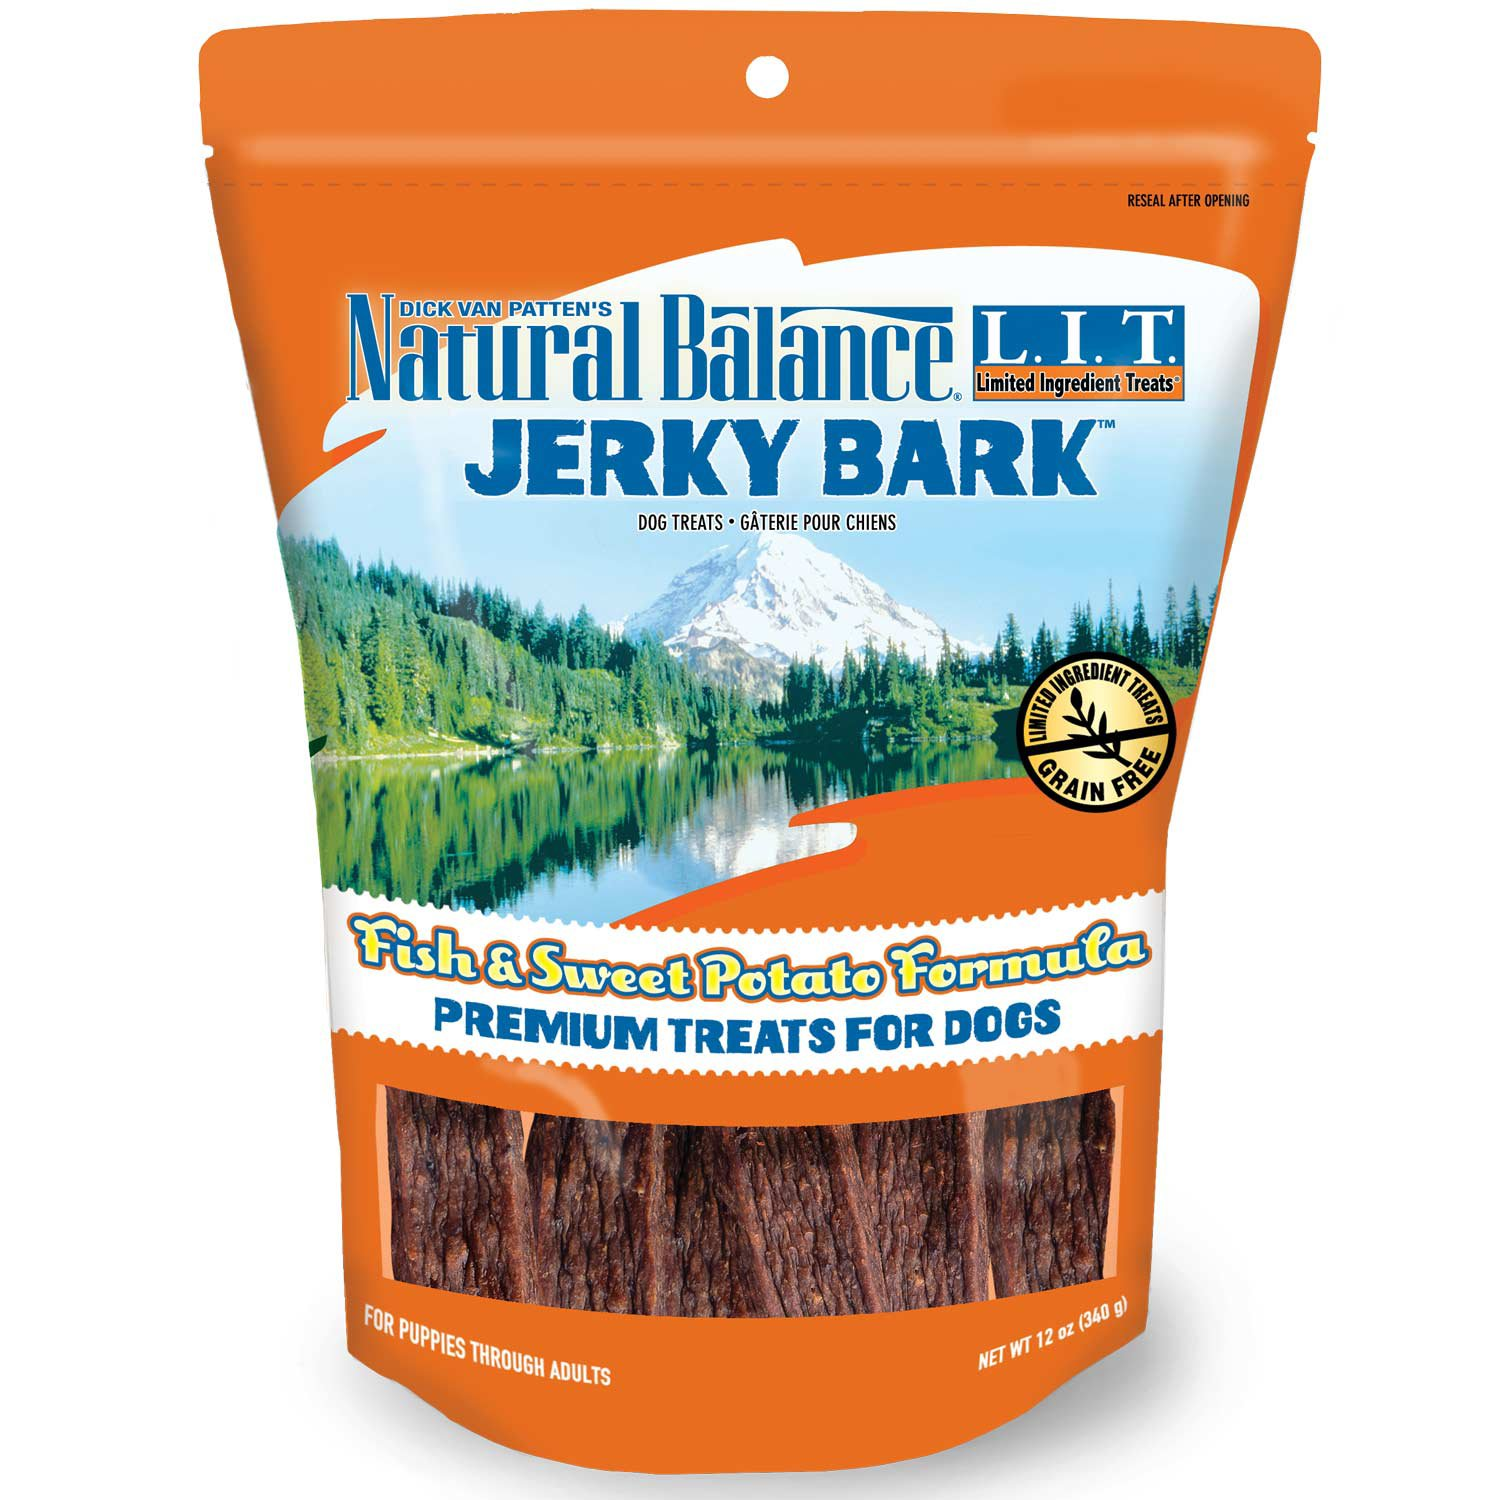 Natural Balance L.I.T. Limited Ingredient Treats Fish & Sweet Potato Jerky Bark